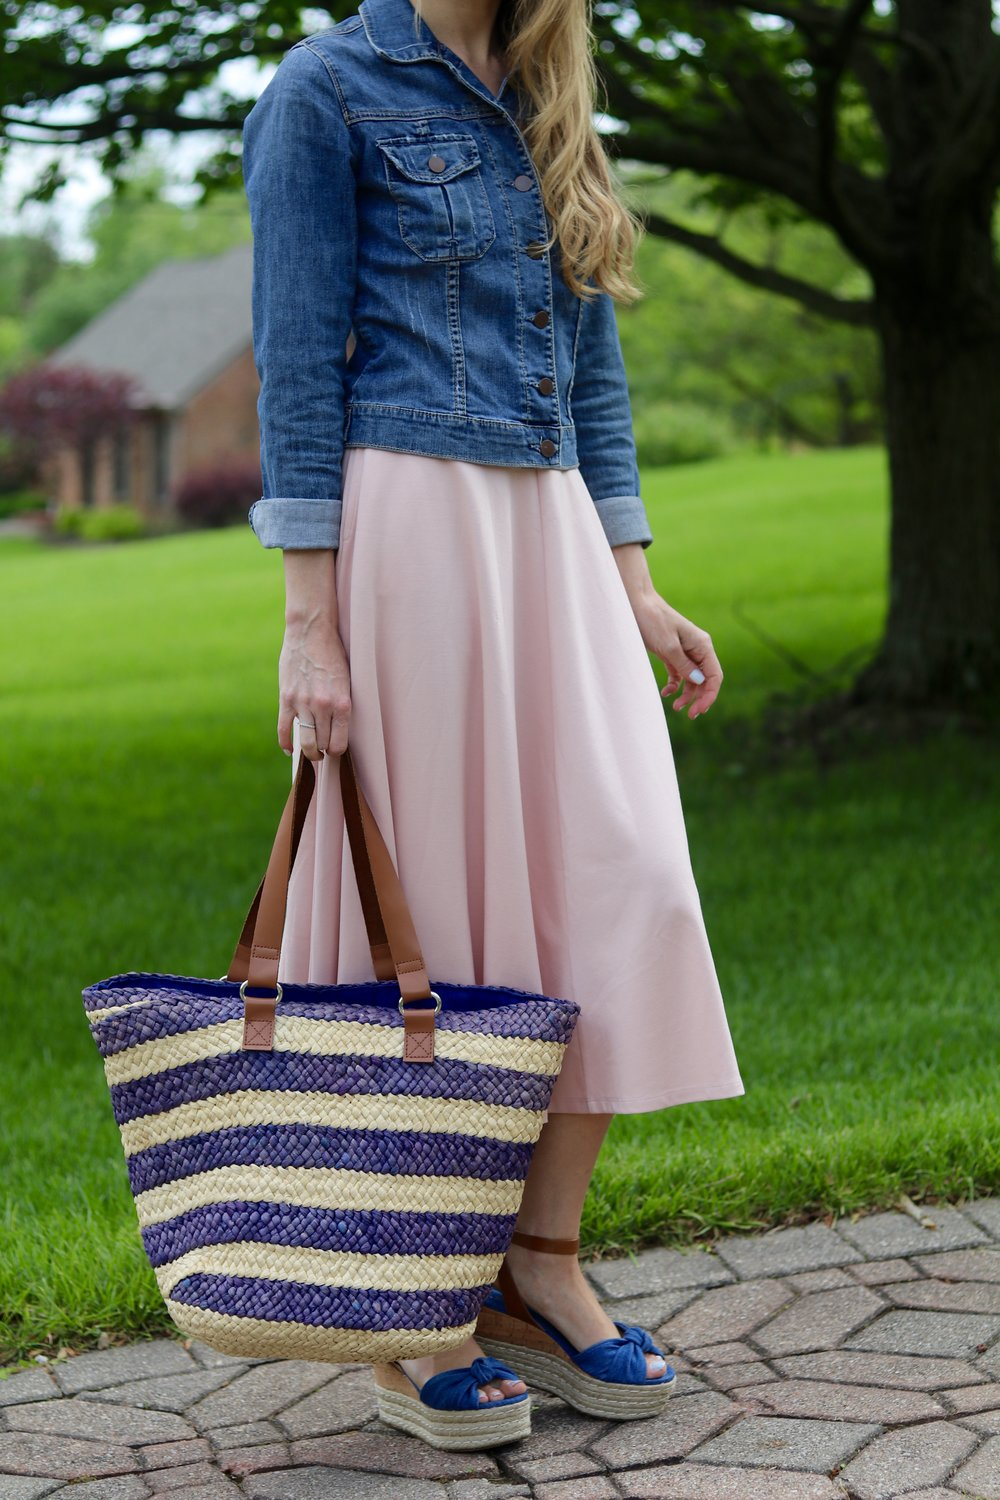 gilt edge | nordstrom spring outfit